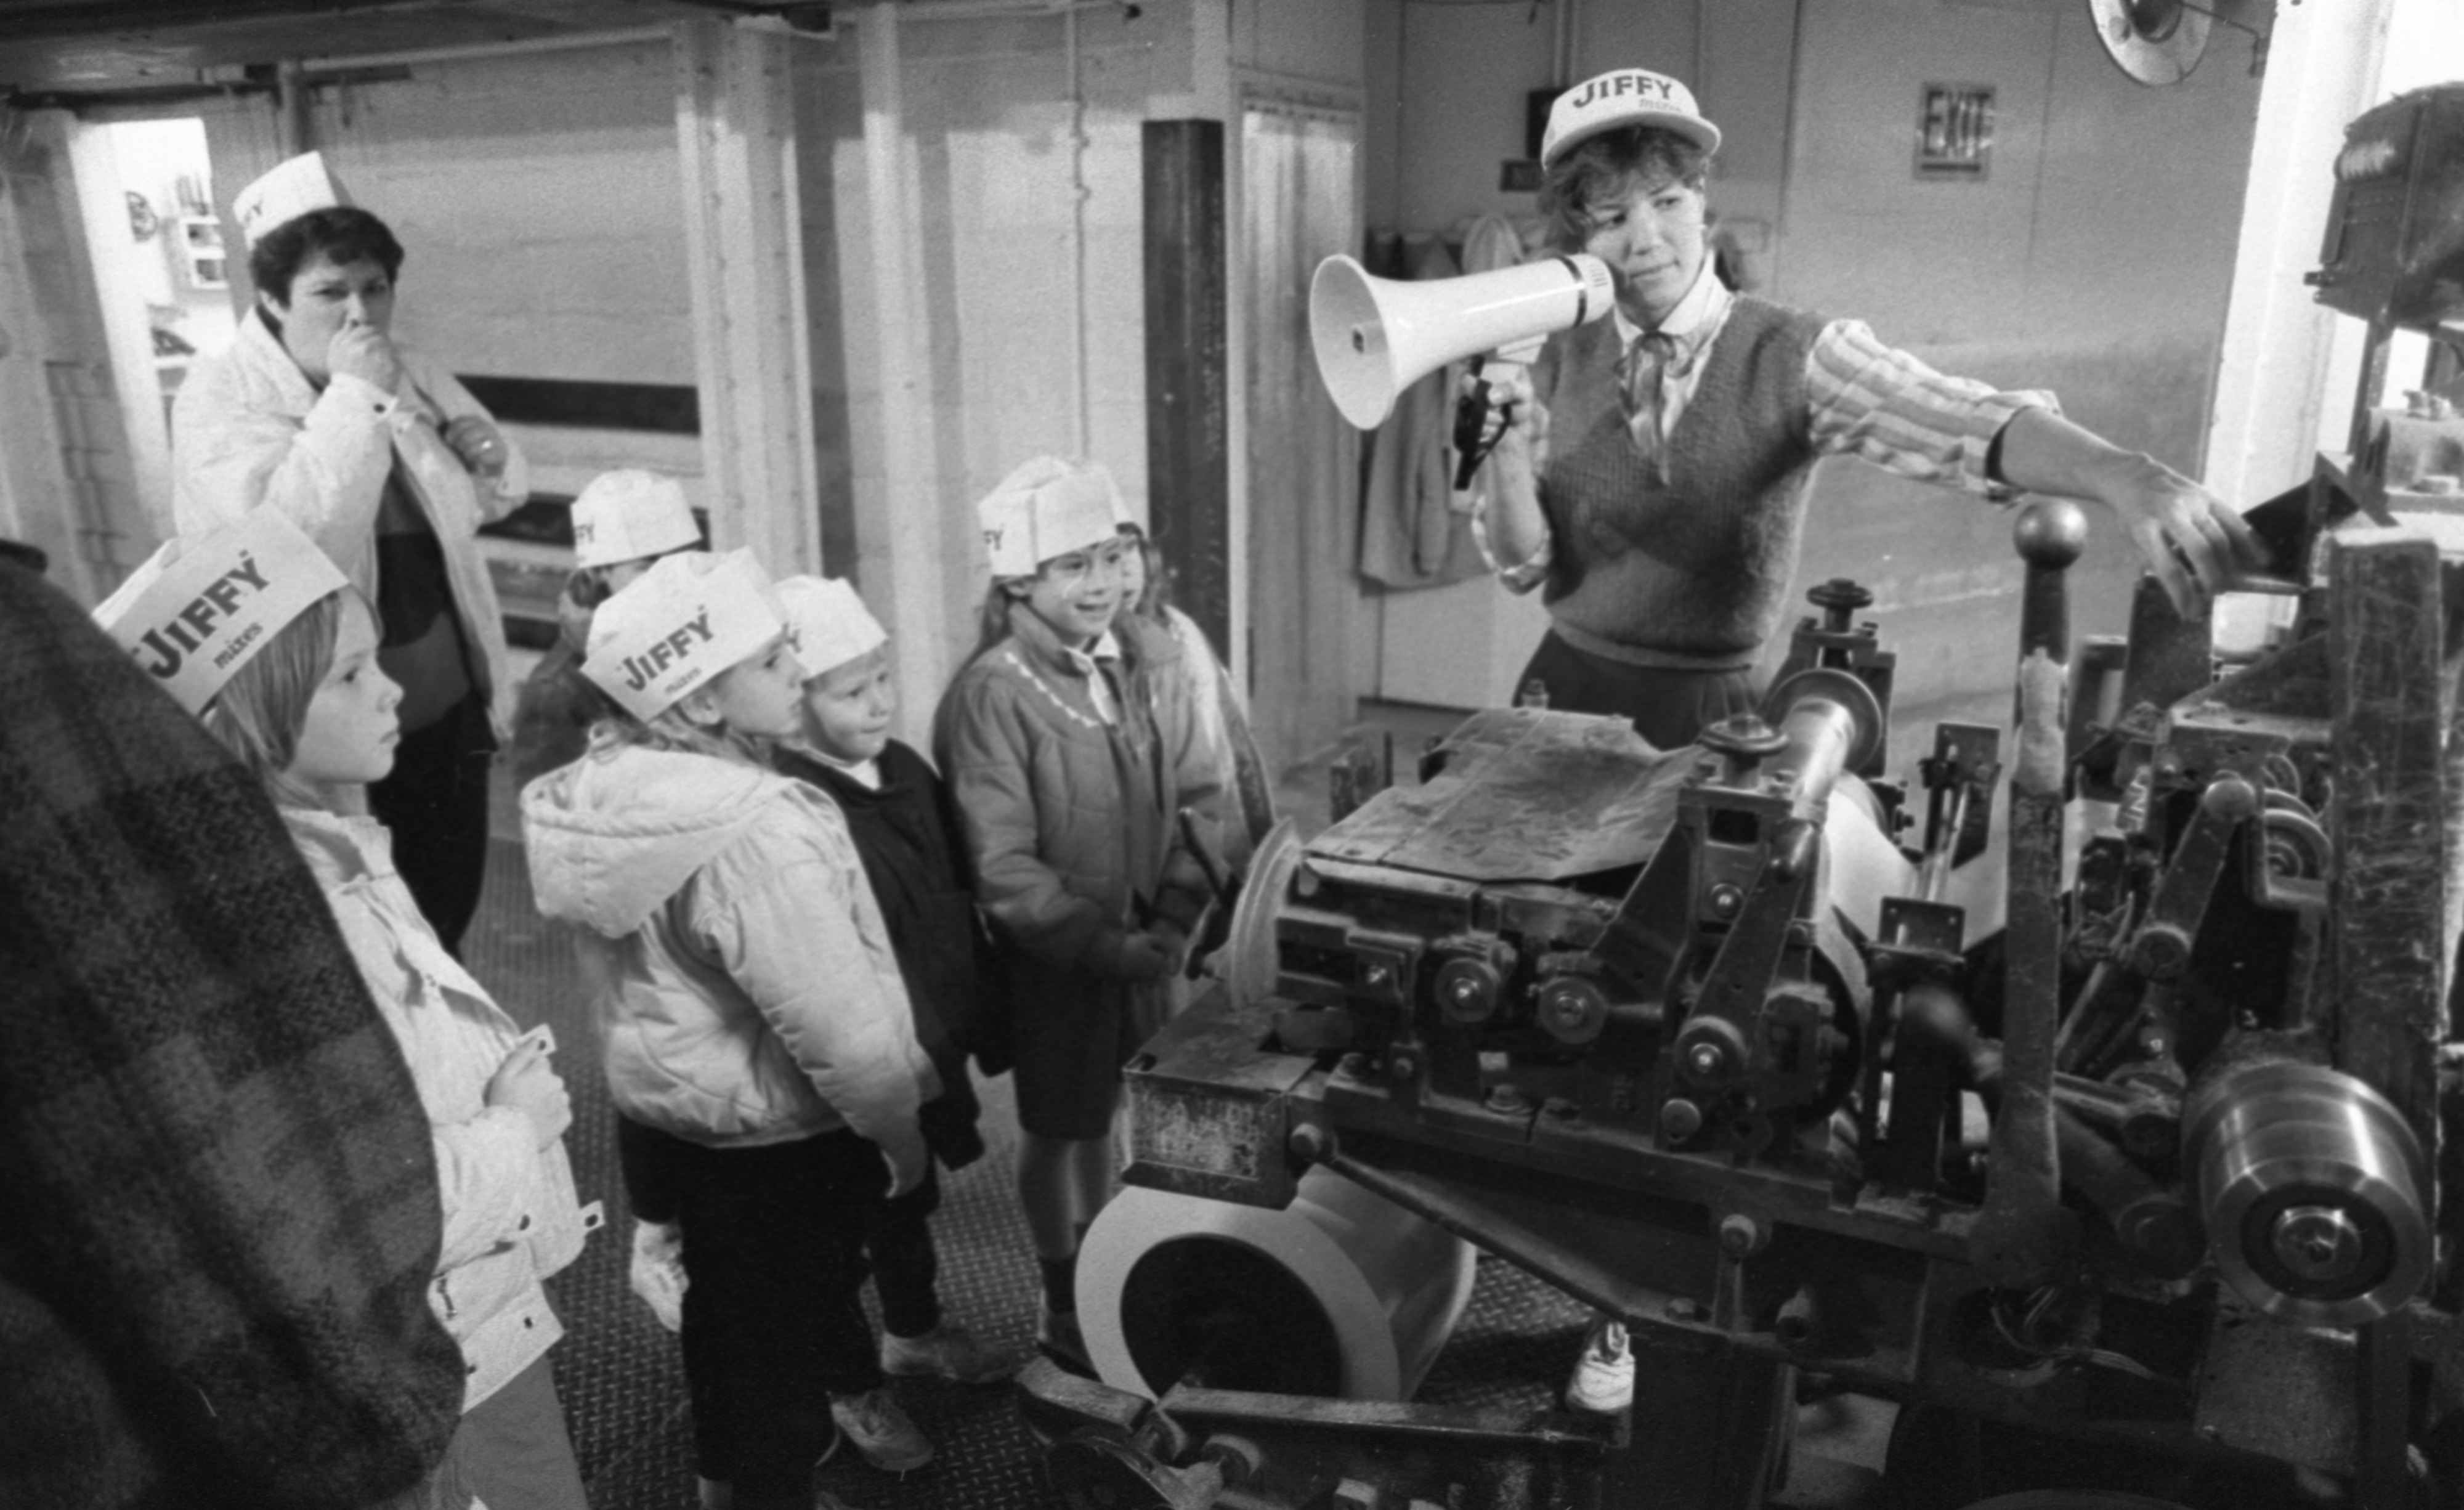 Lynne Farley Shows A Brownie Troop How Boxes Are Made In The Jiffy Mix Packaging Plant, January 1989 image